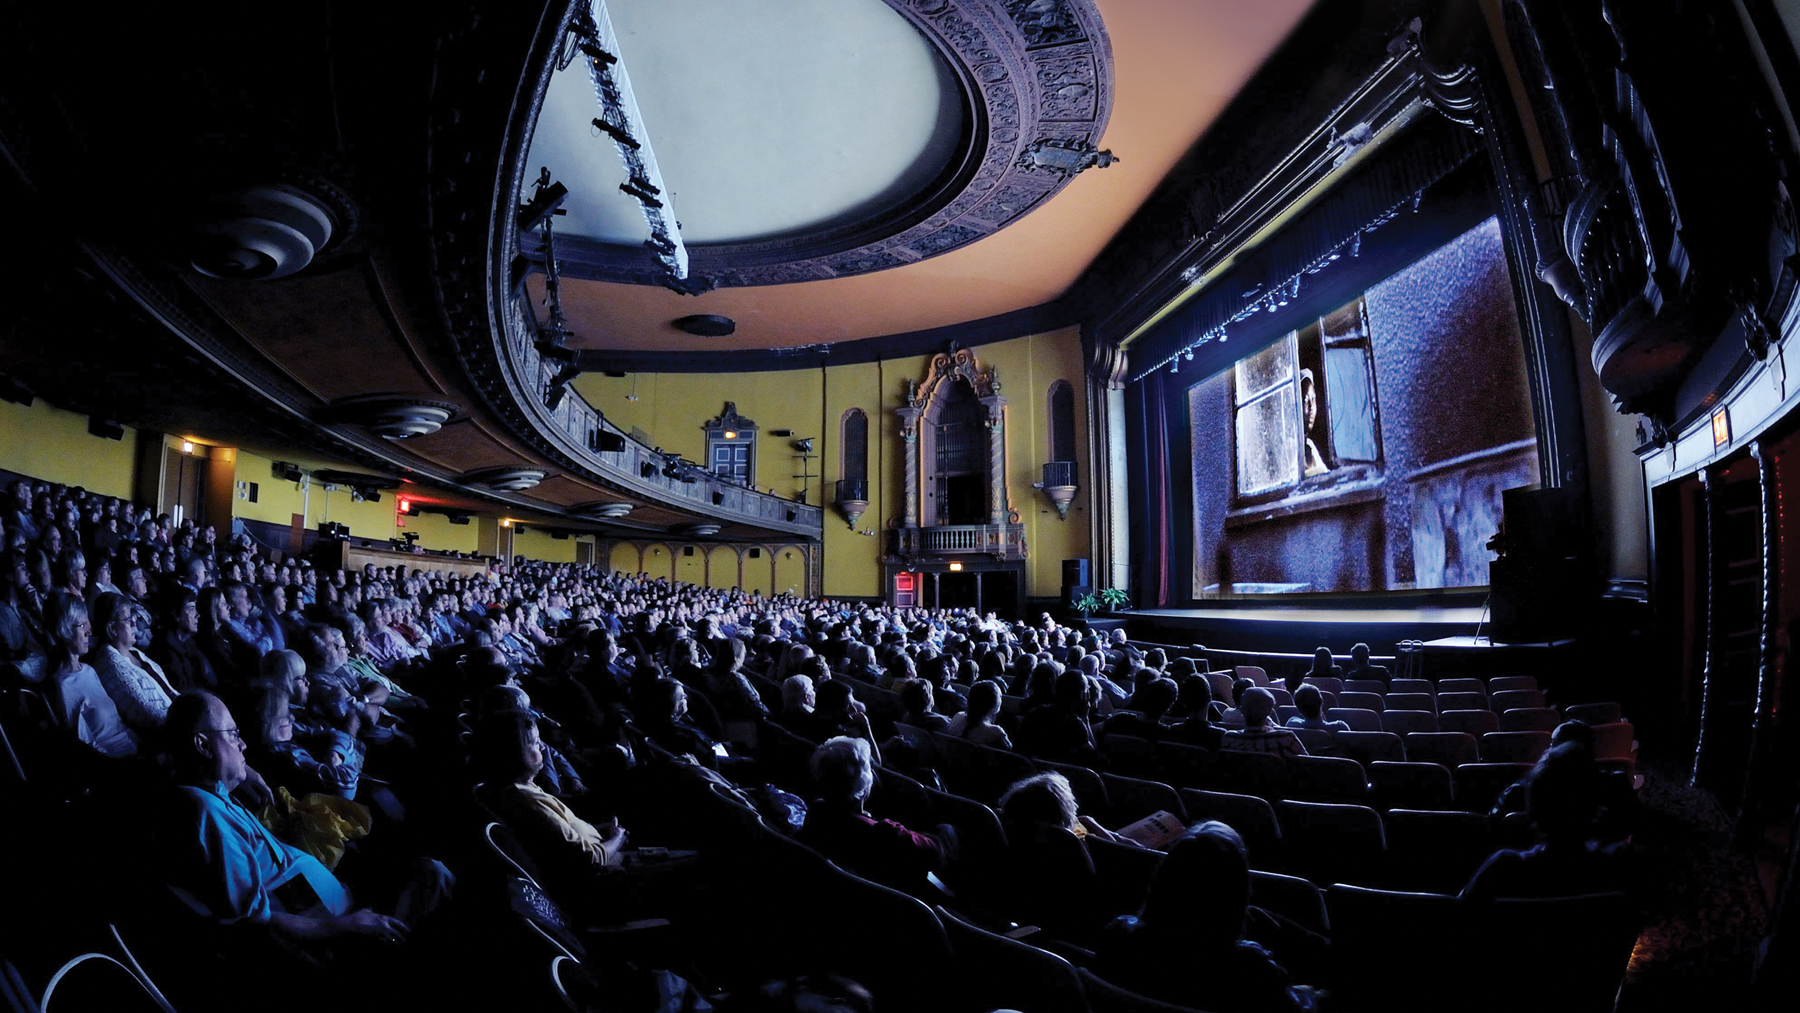 Virginia Theatre, home to Ebertfest, opened in 1921. Photo by Thompson-McClellan